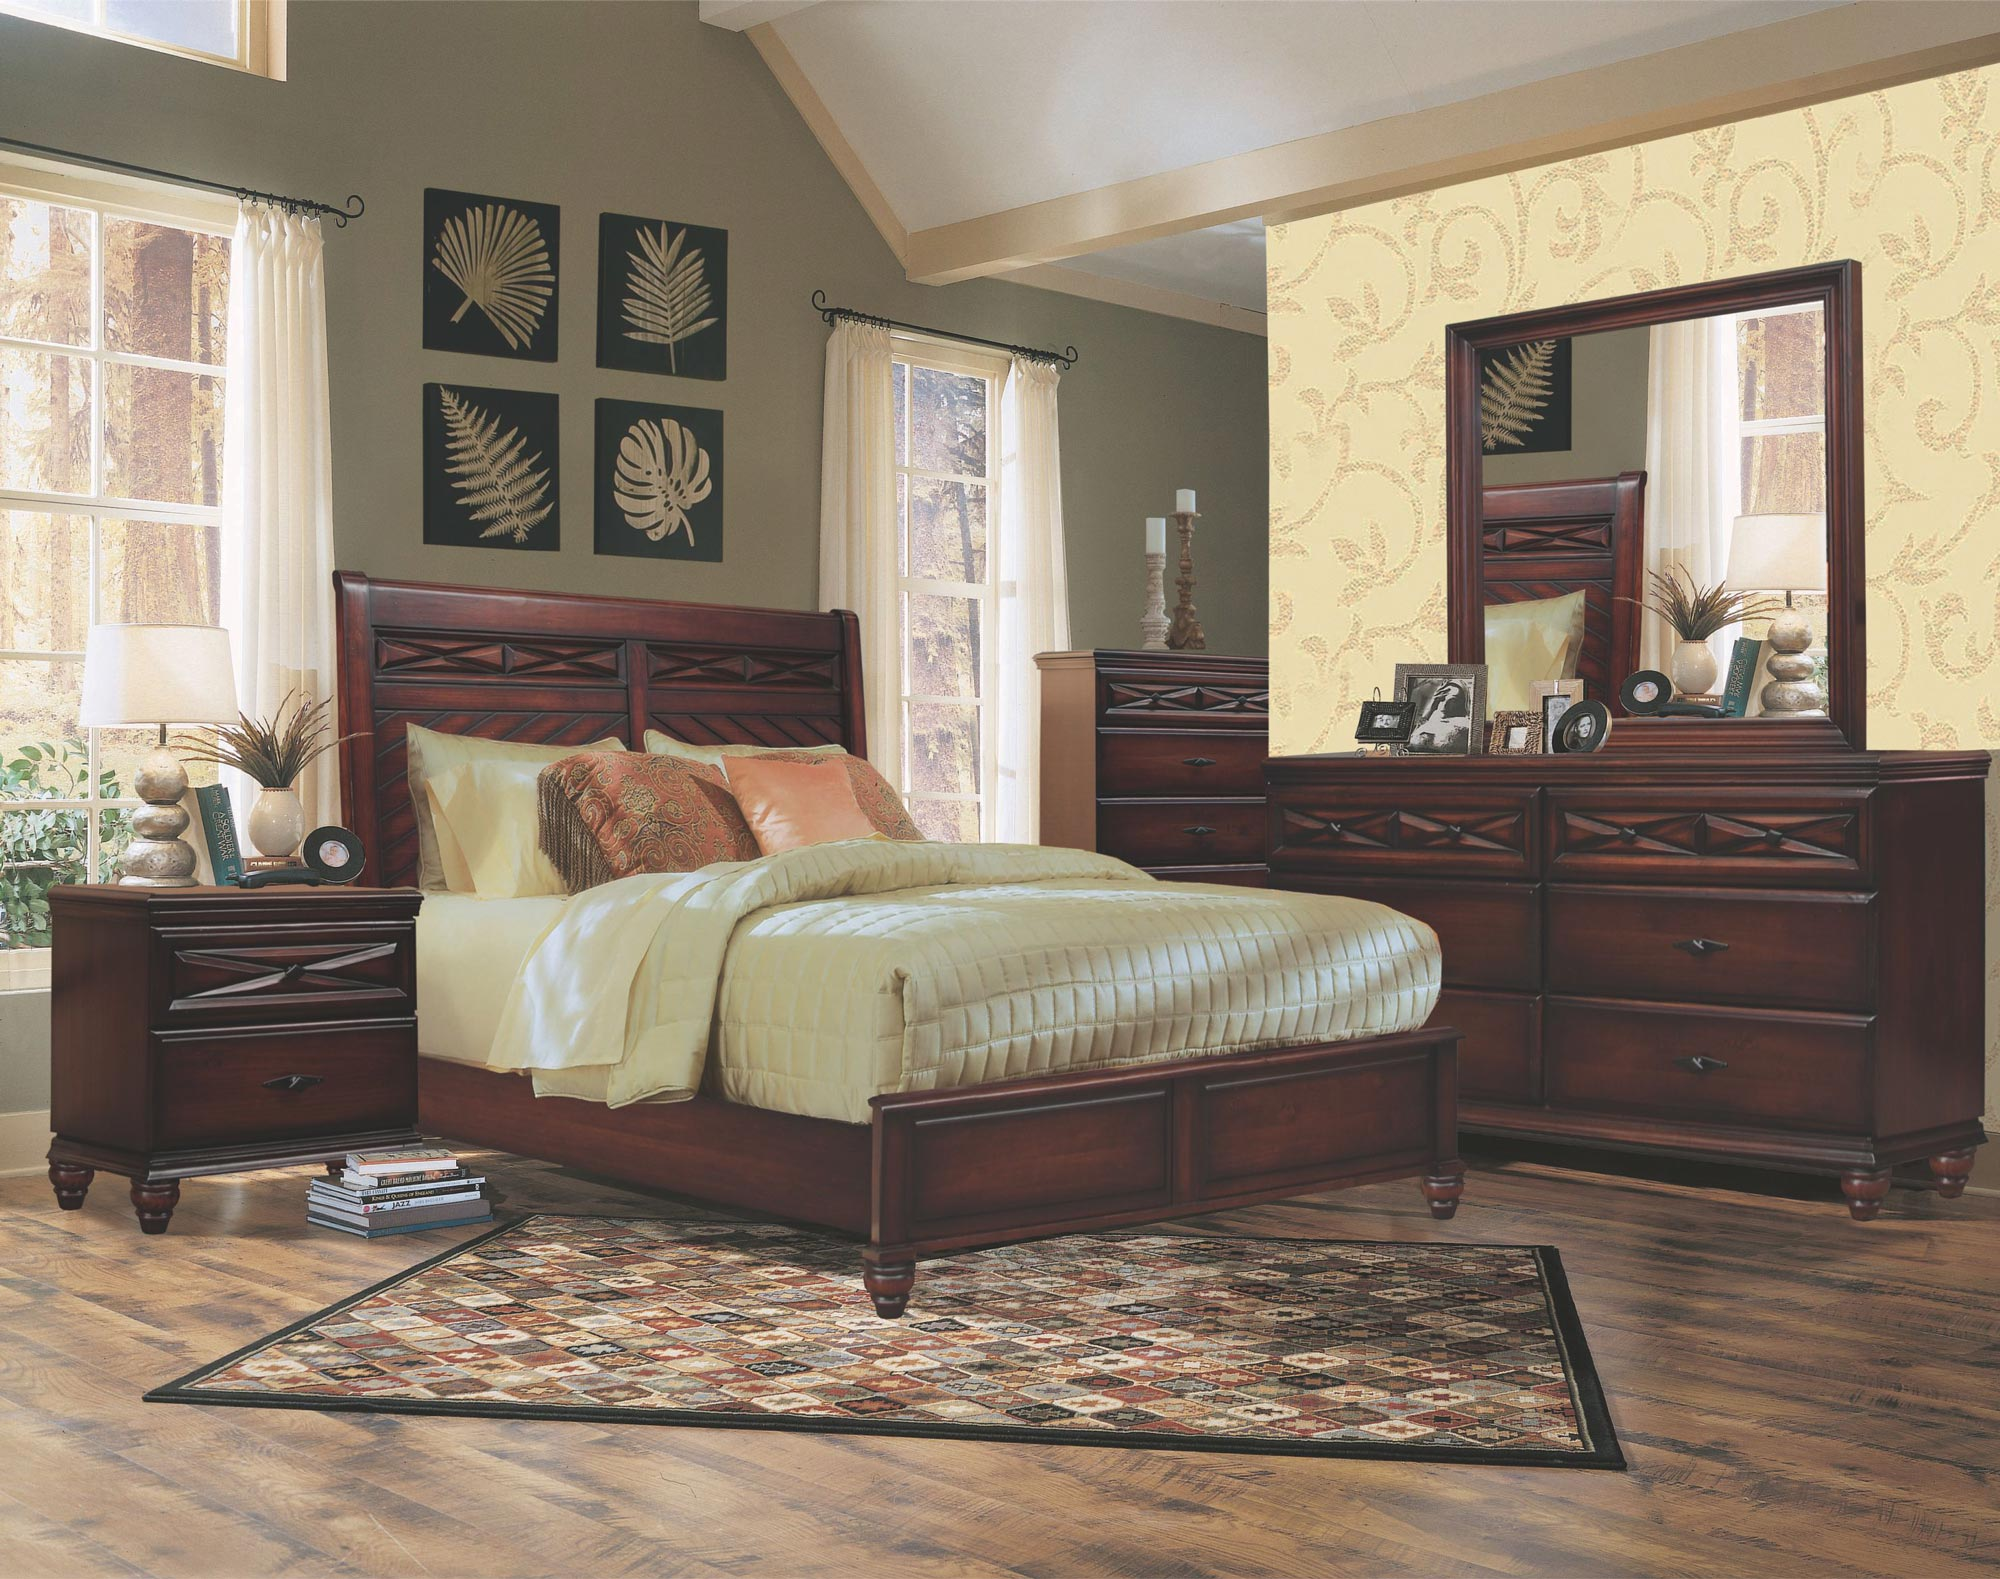 Marvelous photograph of Bedroom Furniture Trinidad on The Building Source with #867045 color and 2000x1579 pixels